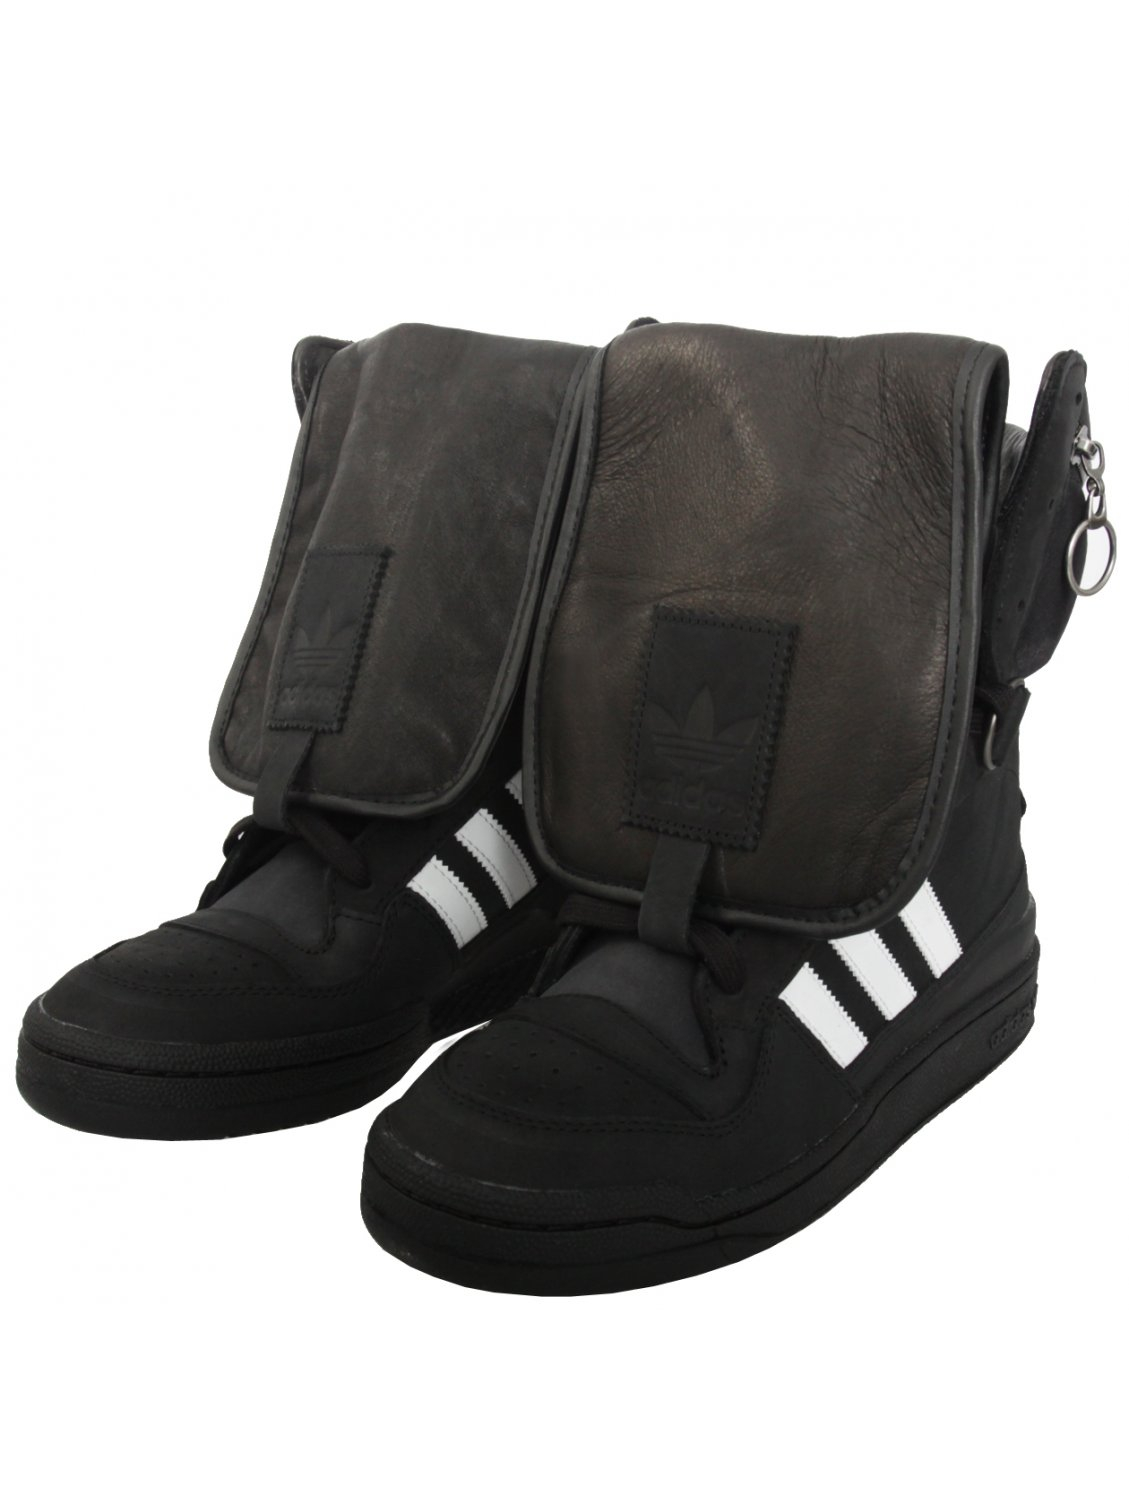 b259c6fd02a4 Jeremy Scott for adidas Tall Boy High Sneakers Black in Black for ...